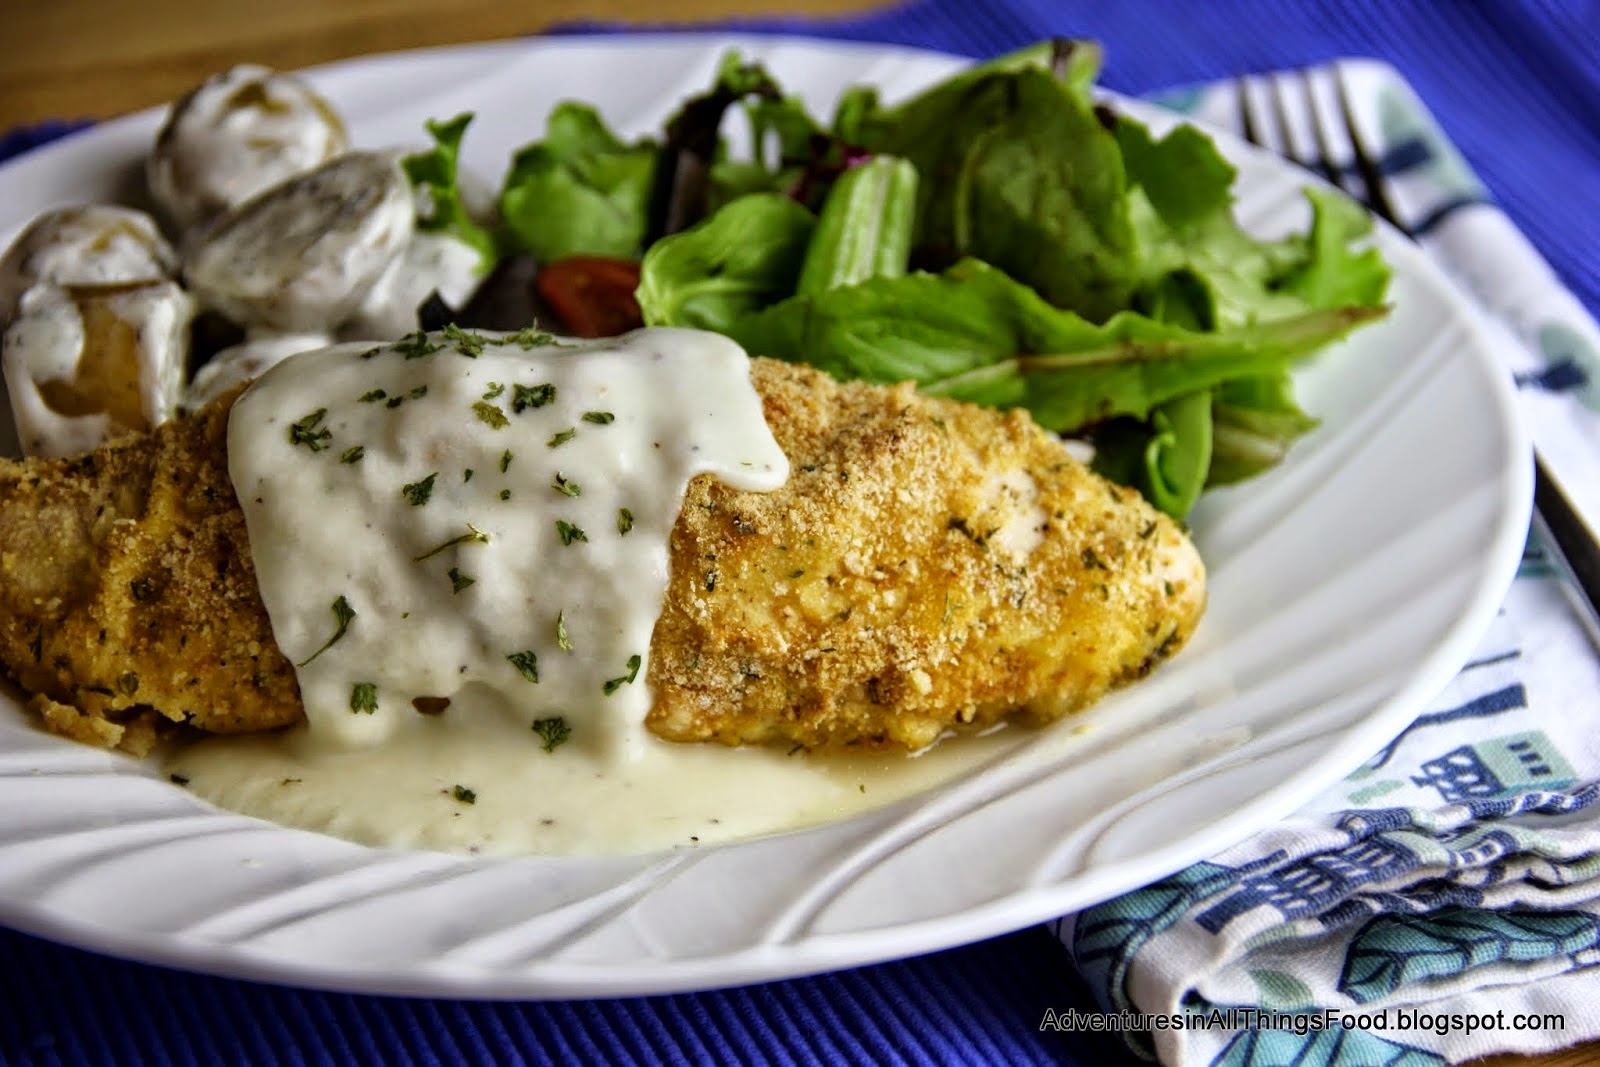 Featured Recipe: Chicken Cordon Bleu and Creamy Dill New Potatoes from Adventures in All Things Food #SecretRecipeClub #maindish #sidedish #recipe #chicken